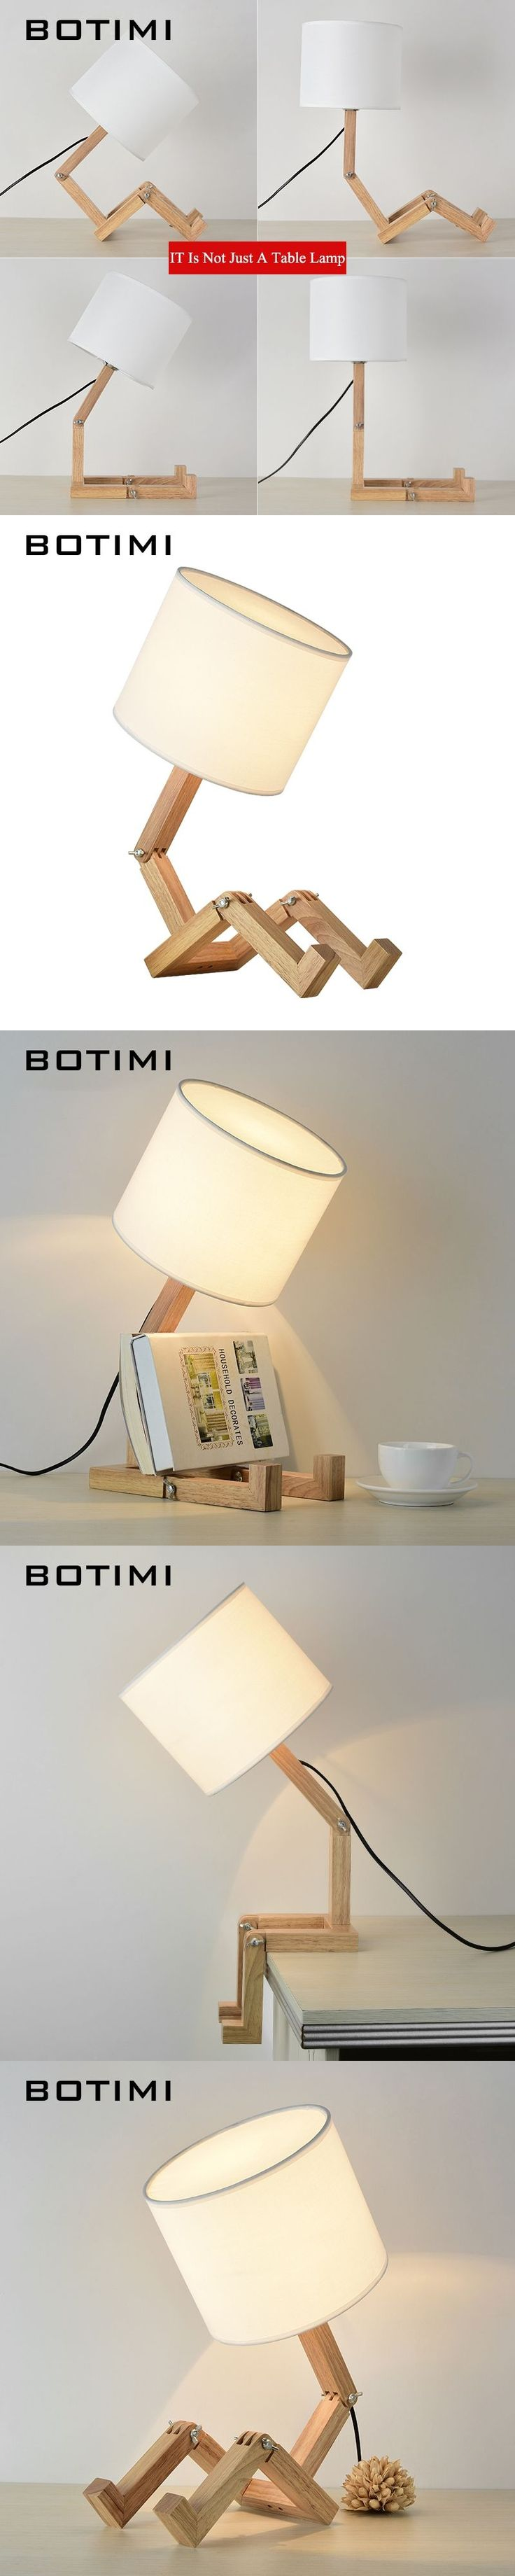 BOTIMI European Style Table Lamp Wooden Bedside with Fabric Lampshade lamparas de mesa Desk Light Deco Luminaria For Living Room